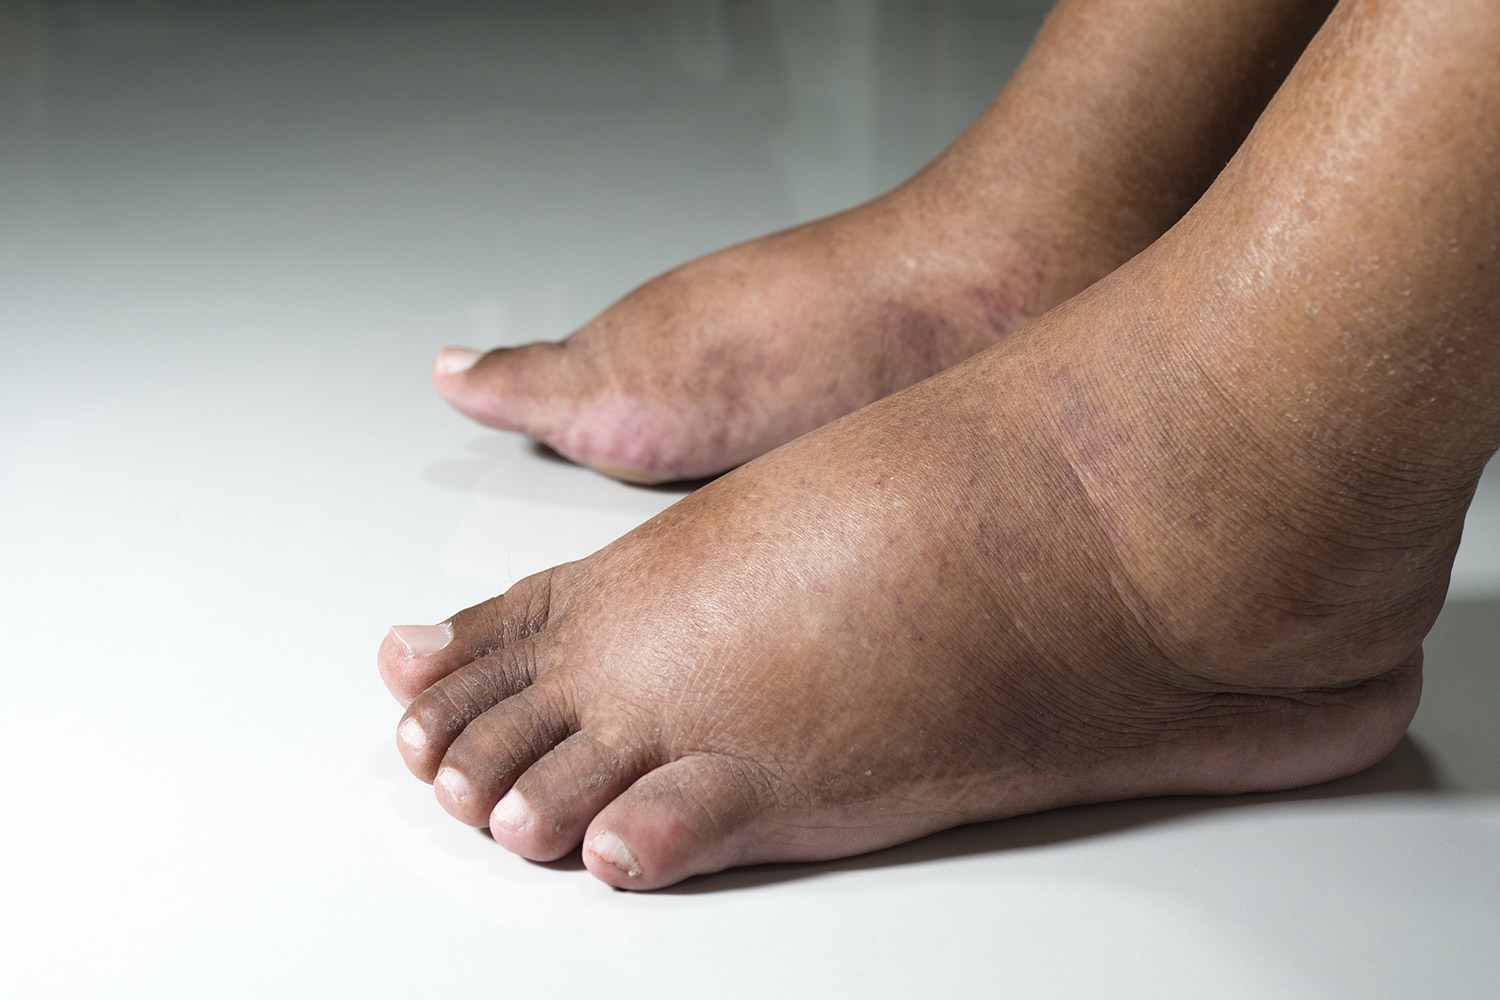 man with swollen feet